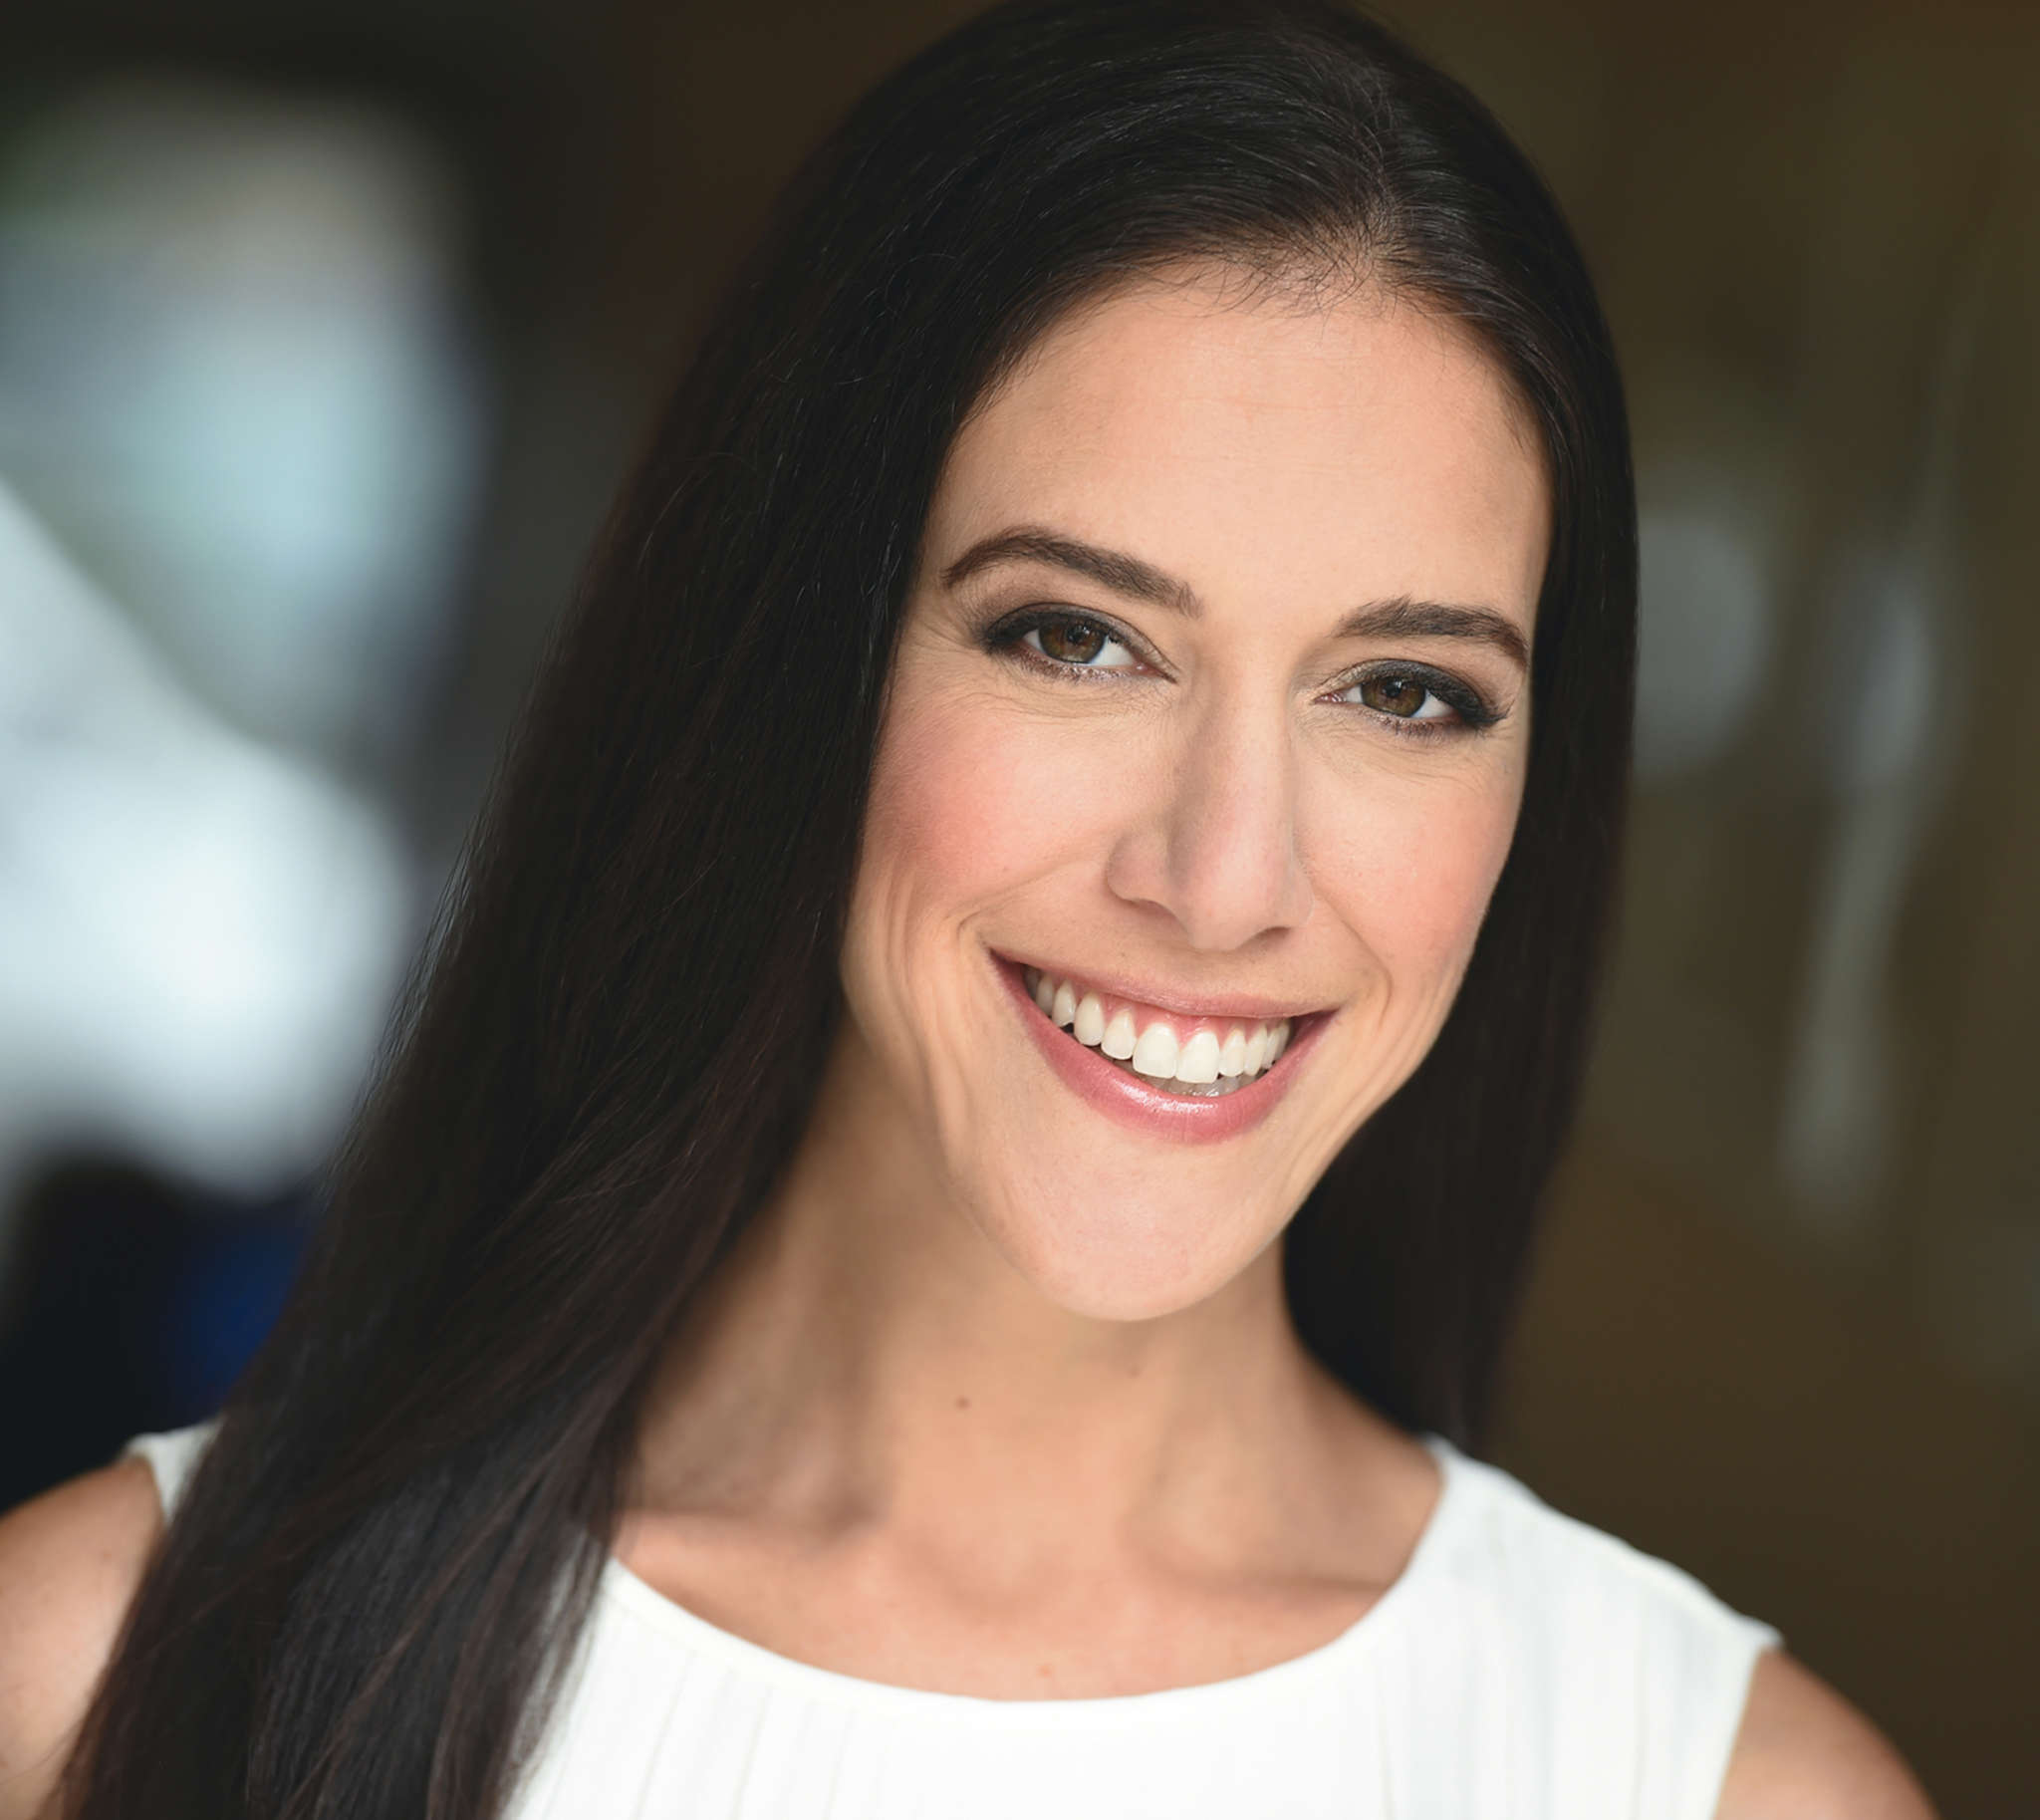 Amanda Steinberg, founder of DailyWorth and WorthFM.